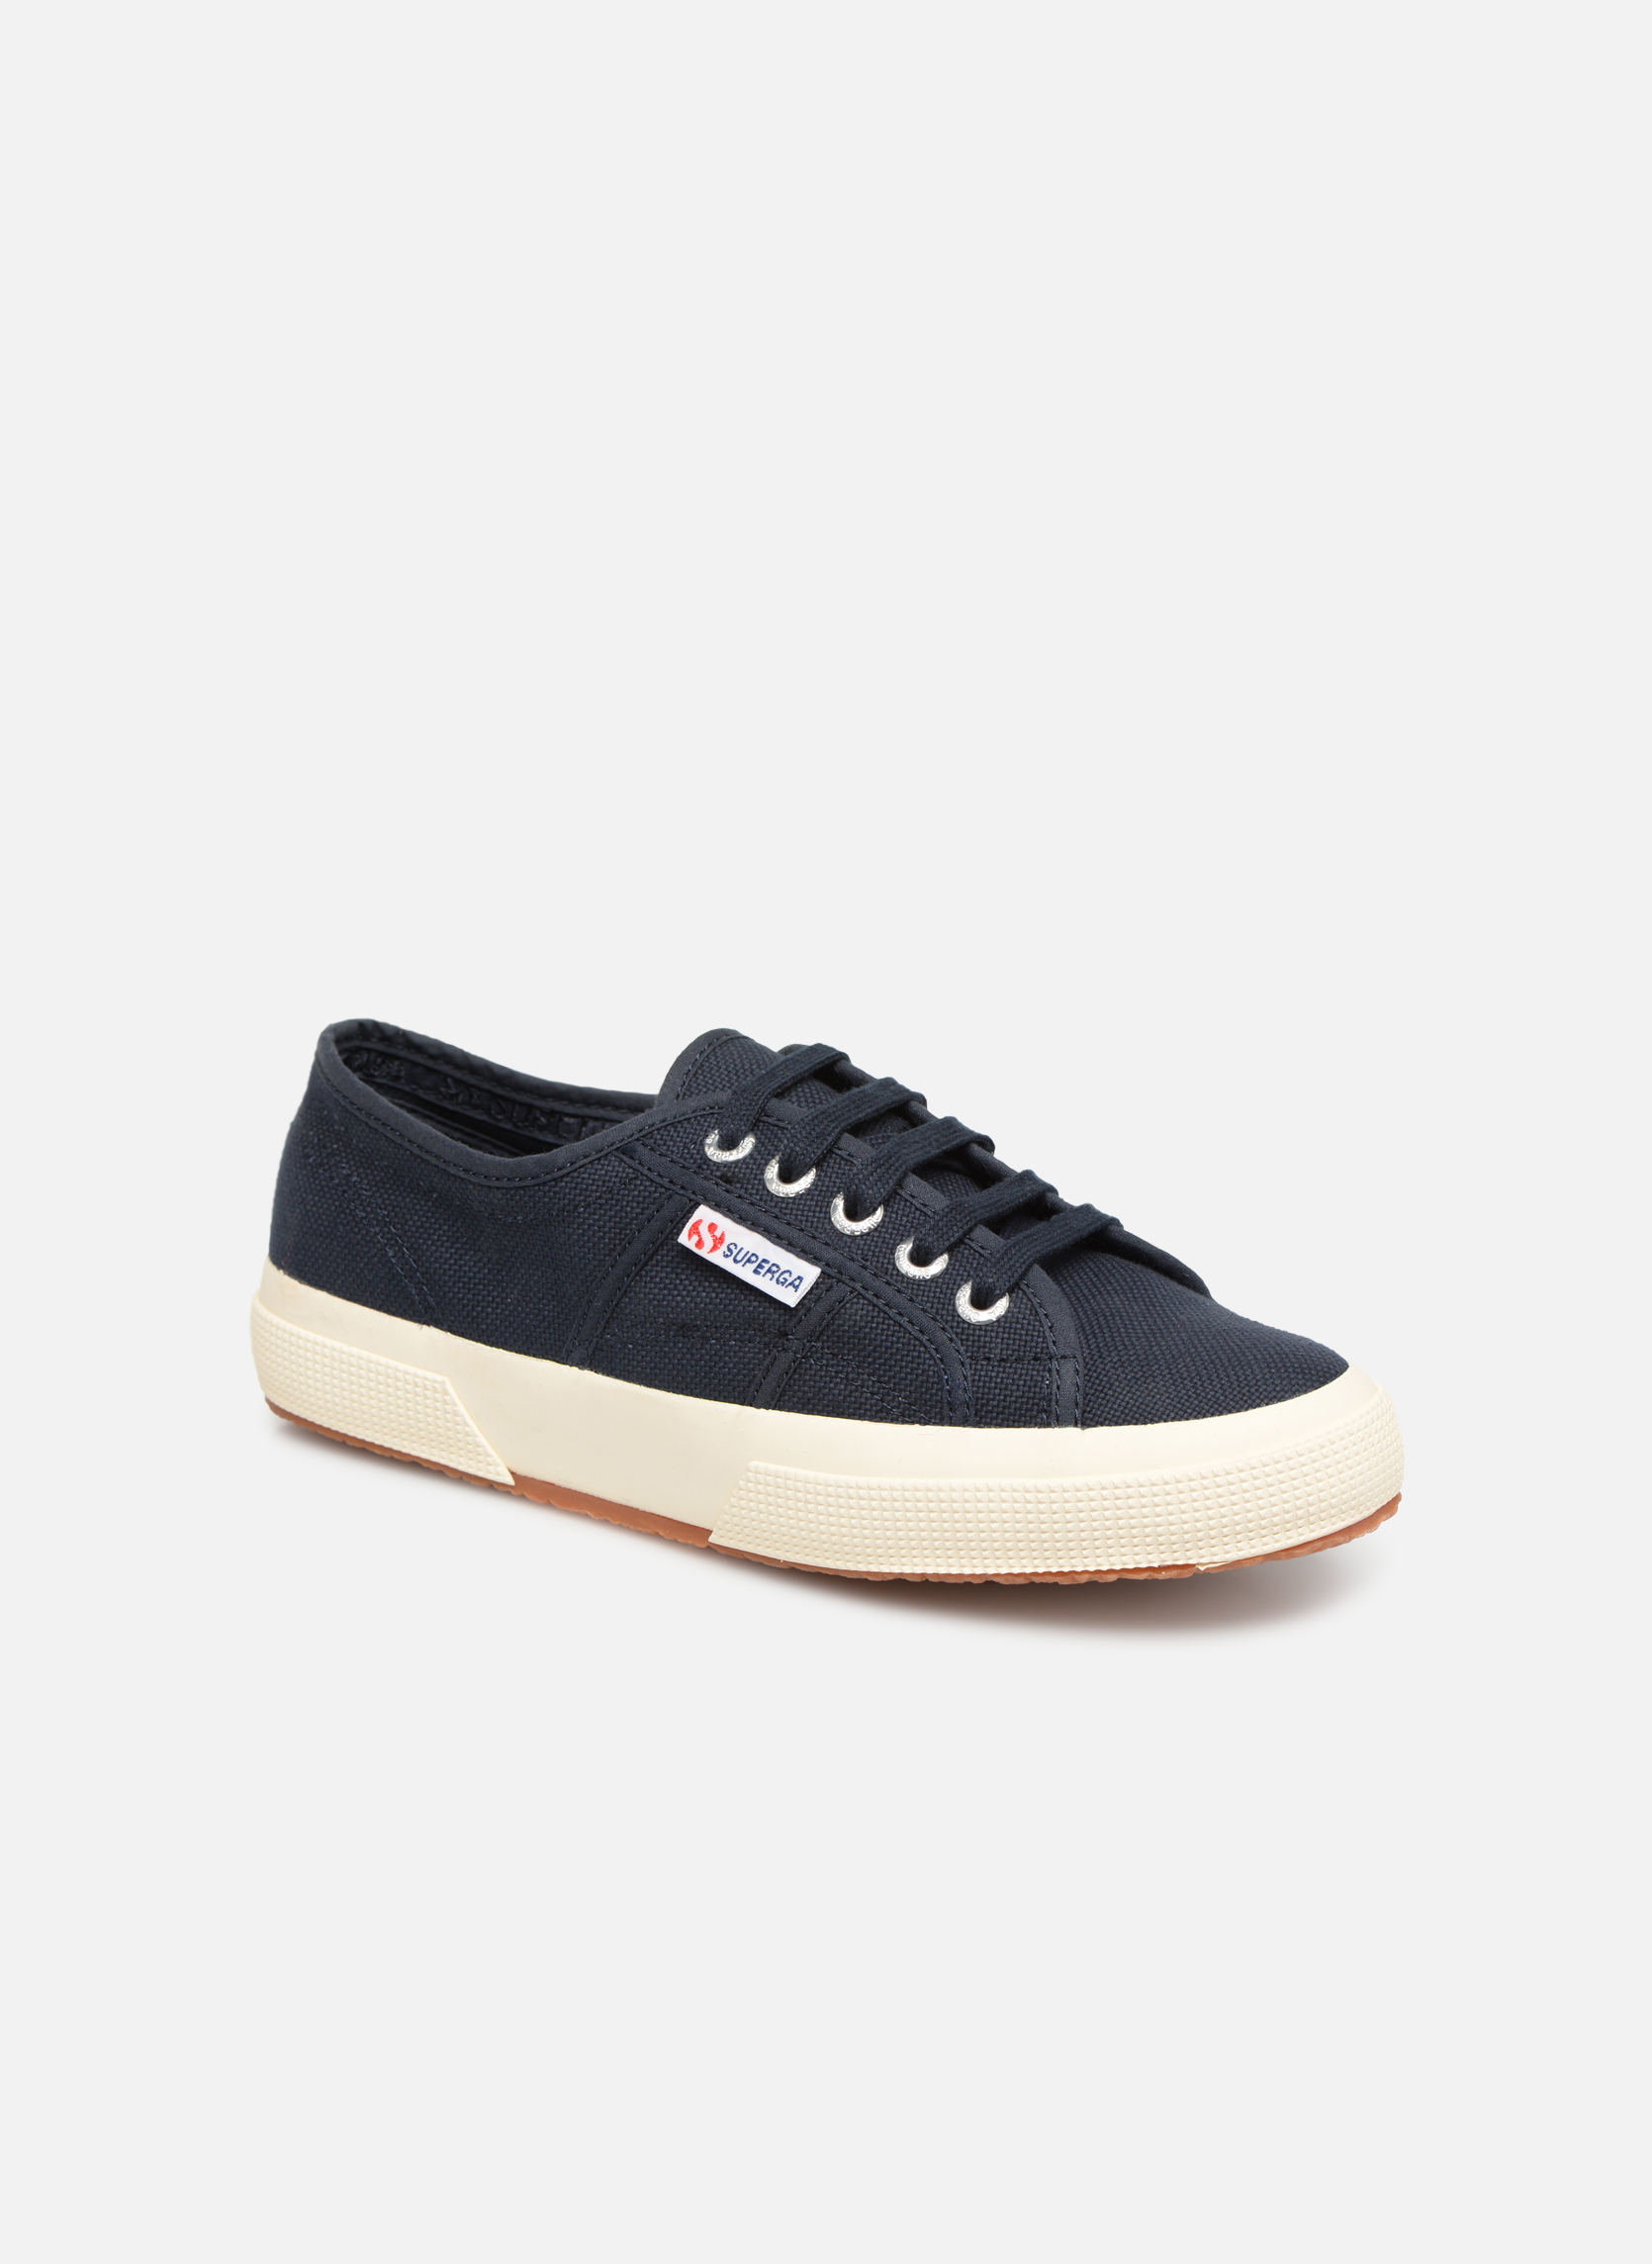 Sneakers Donna 2750 Cotu W